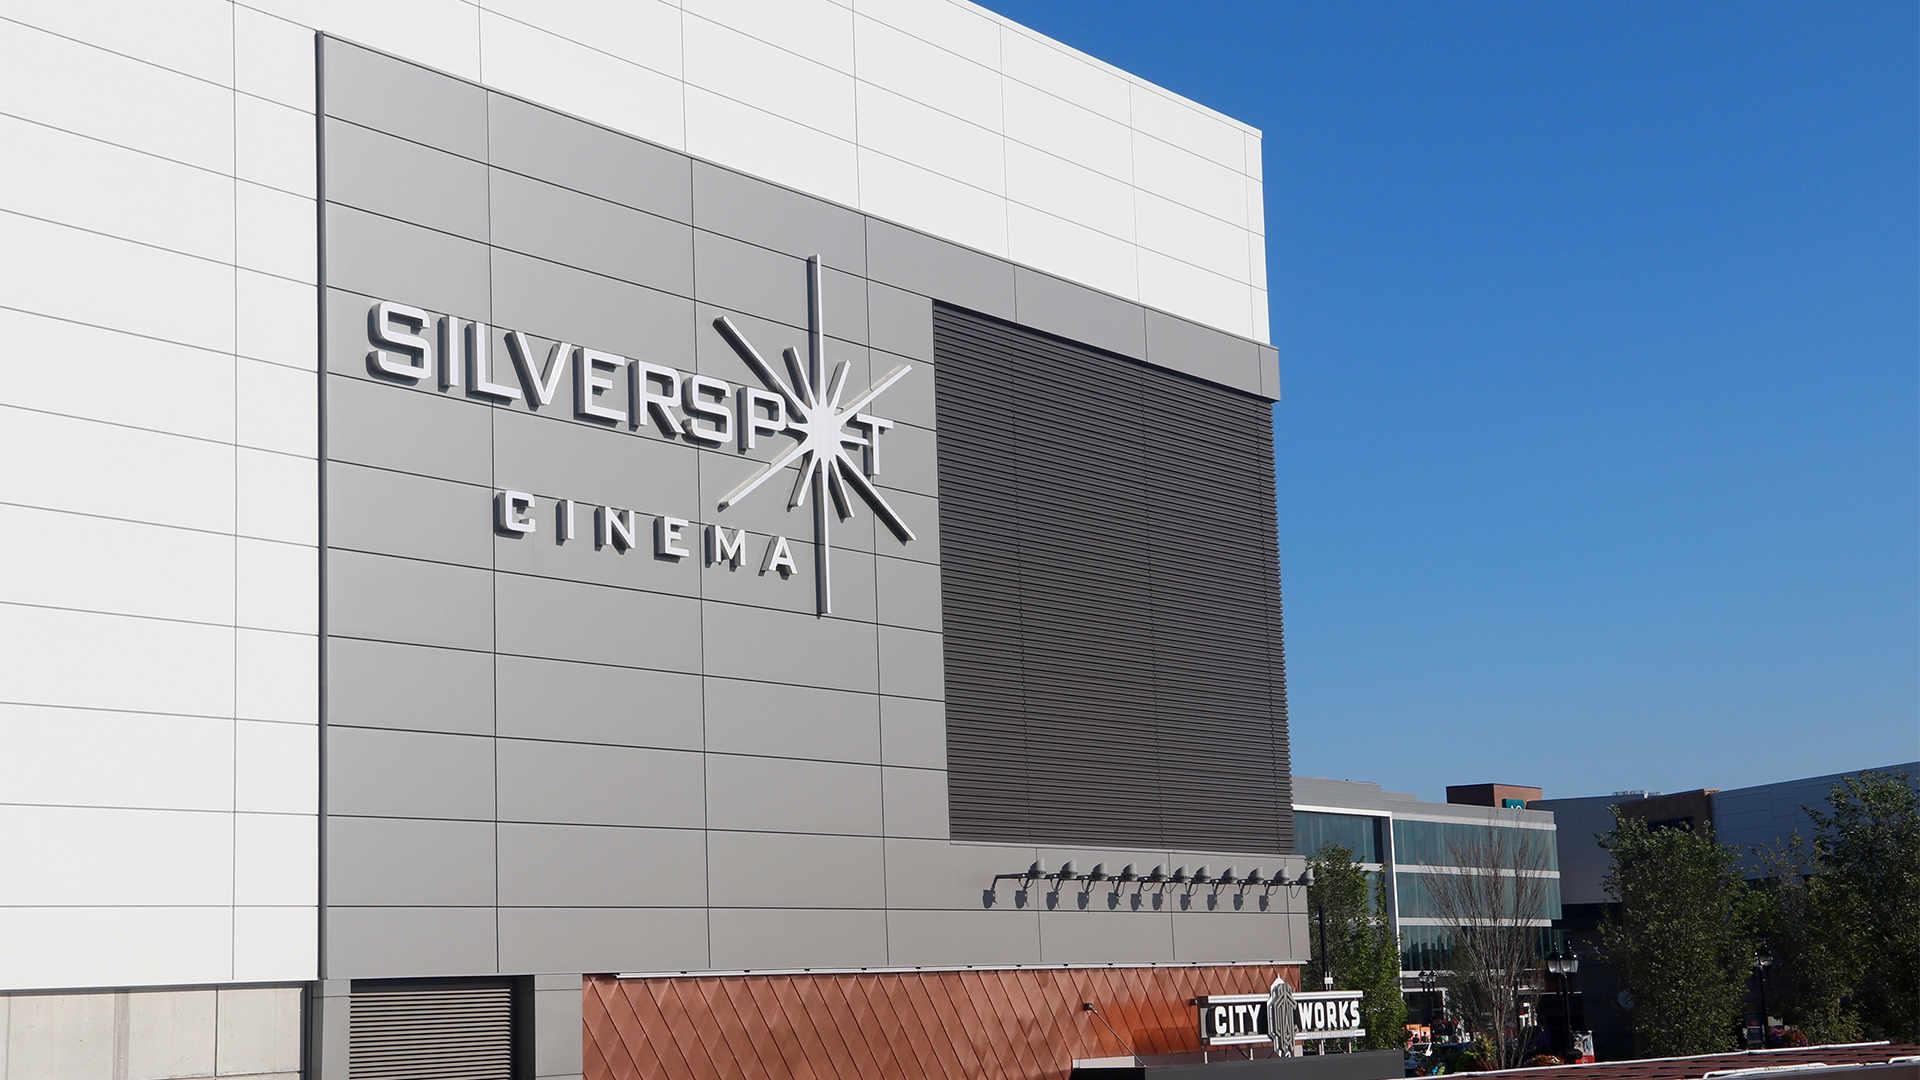 Silverspot Cinema Kalkreuth